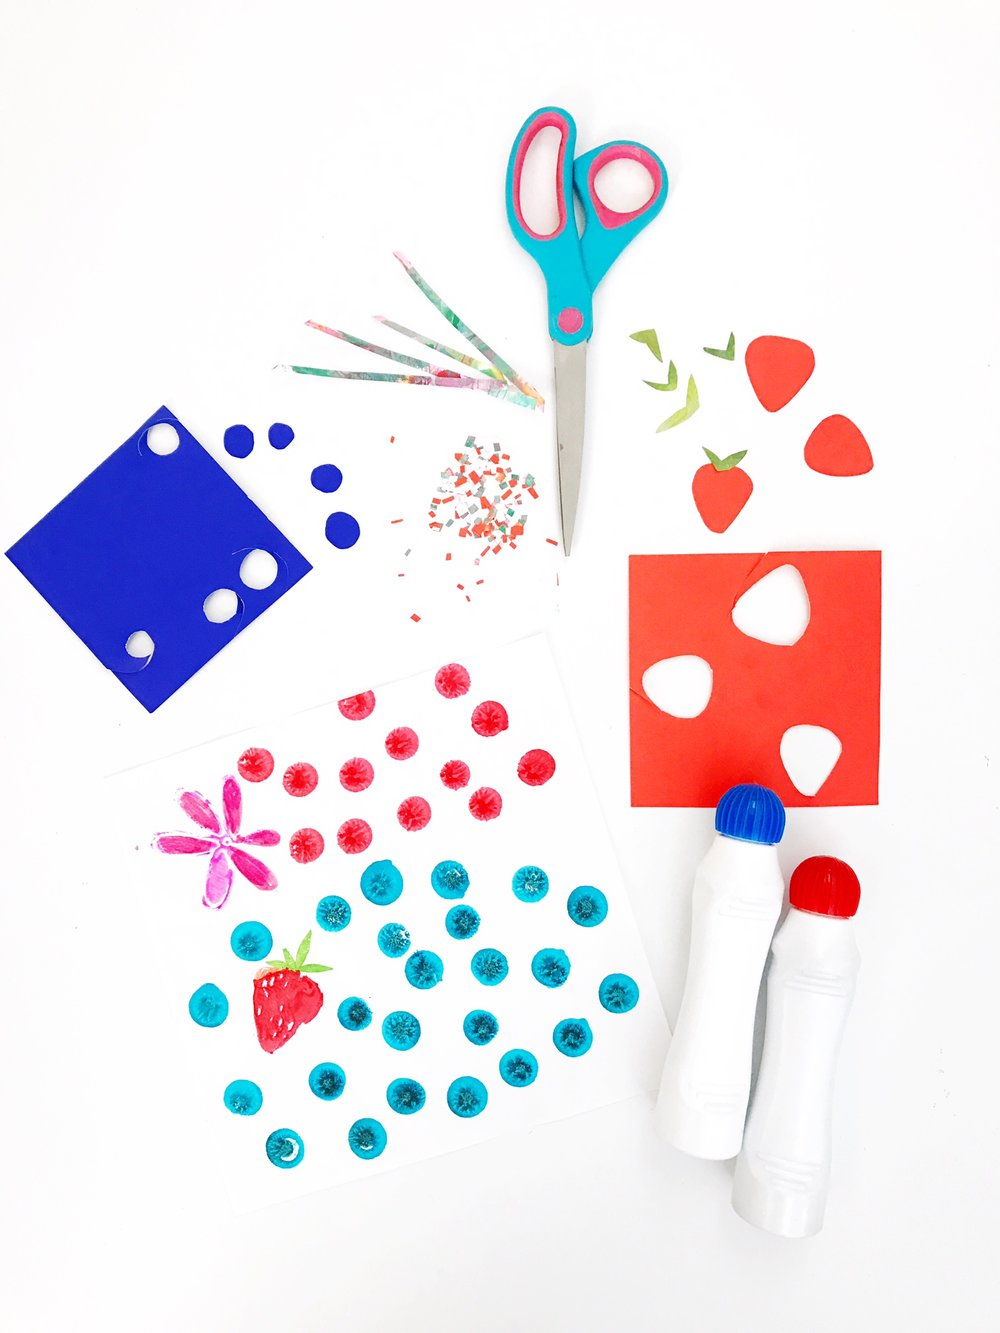 DON'T FORGET THE TOPPINGS! DOT MARKER BERRIES OR CUT PAPER COLLAGE?